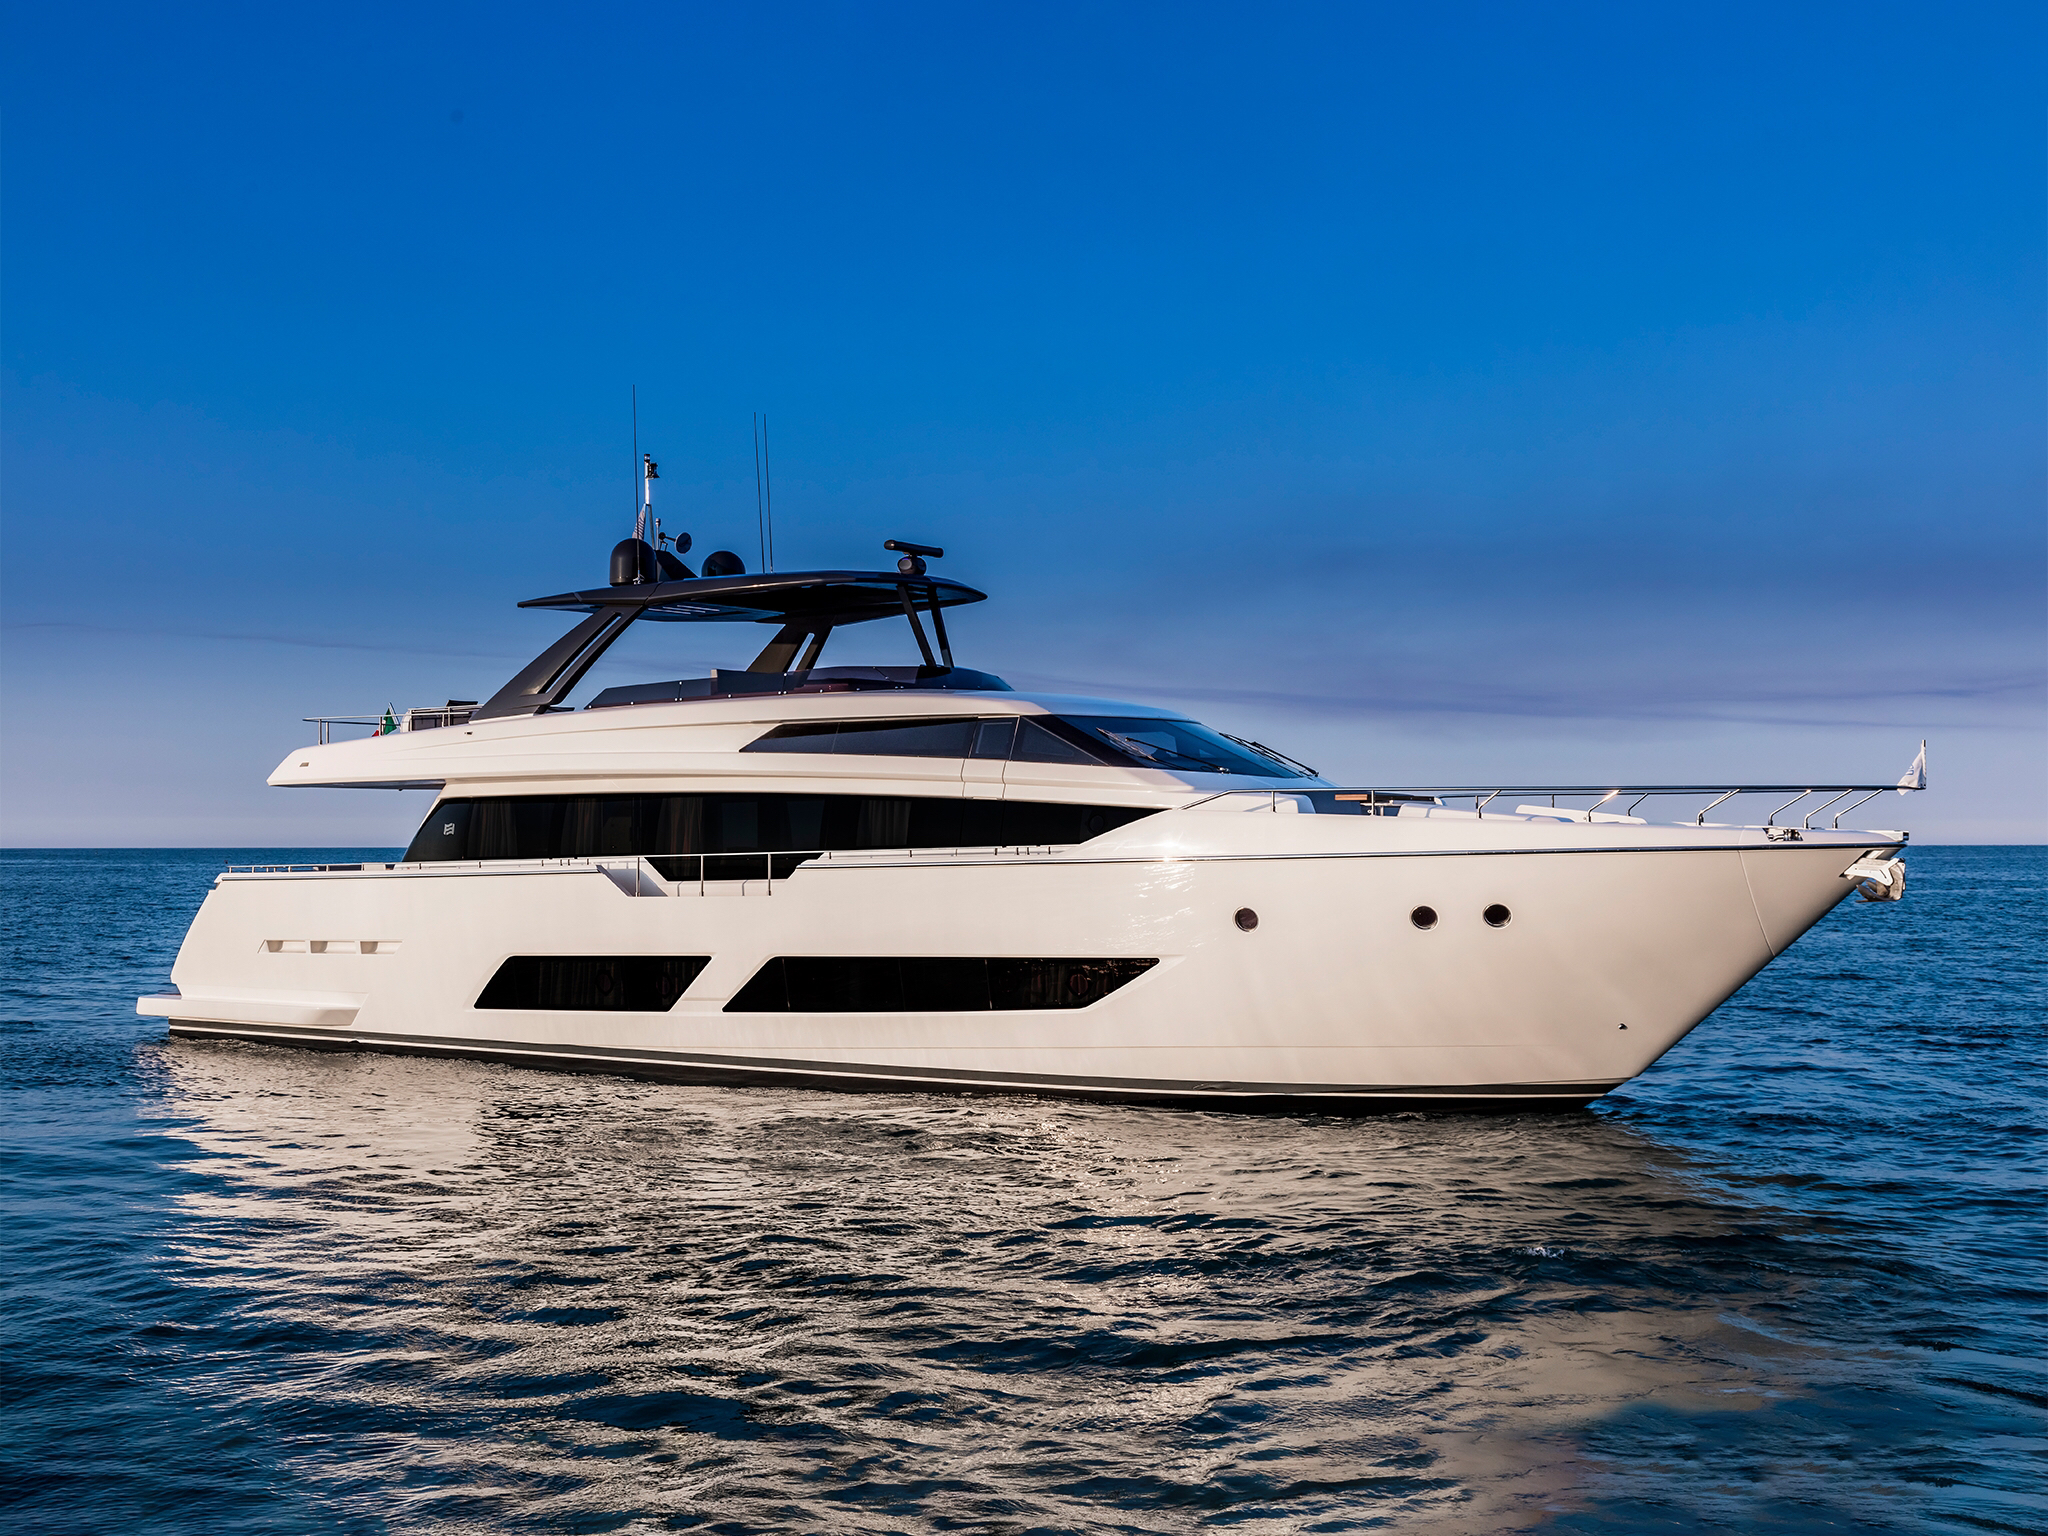 ferretti yachts 850 ferretti group JMA Yachting Port Fréjus Var vente location neuf occasion places de port